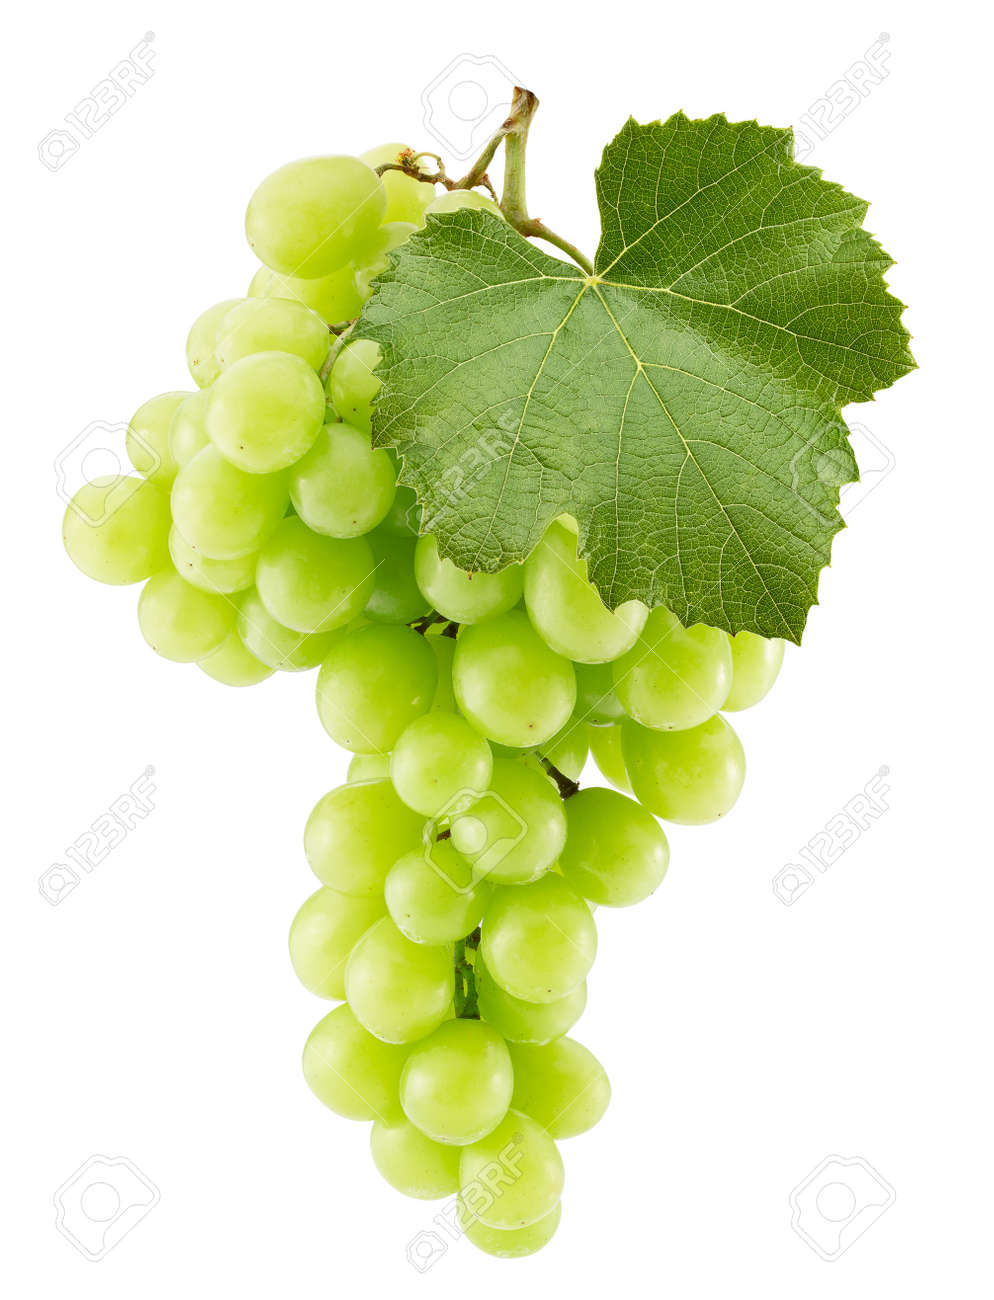 green grapes isolated on a white background. - 167472290